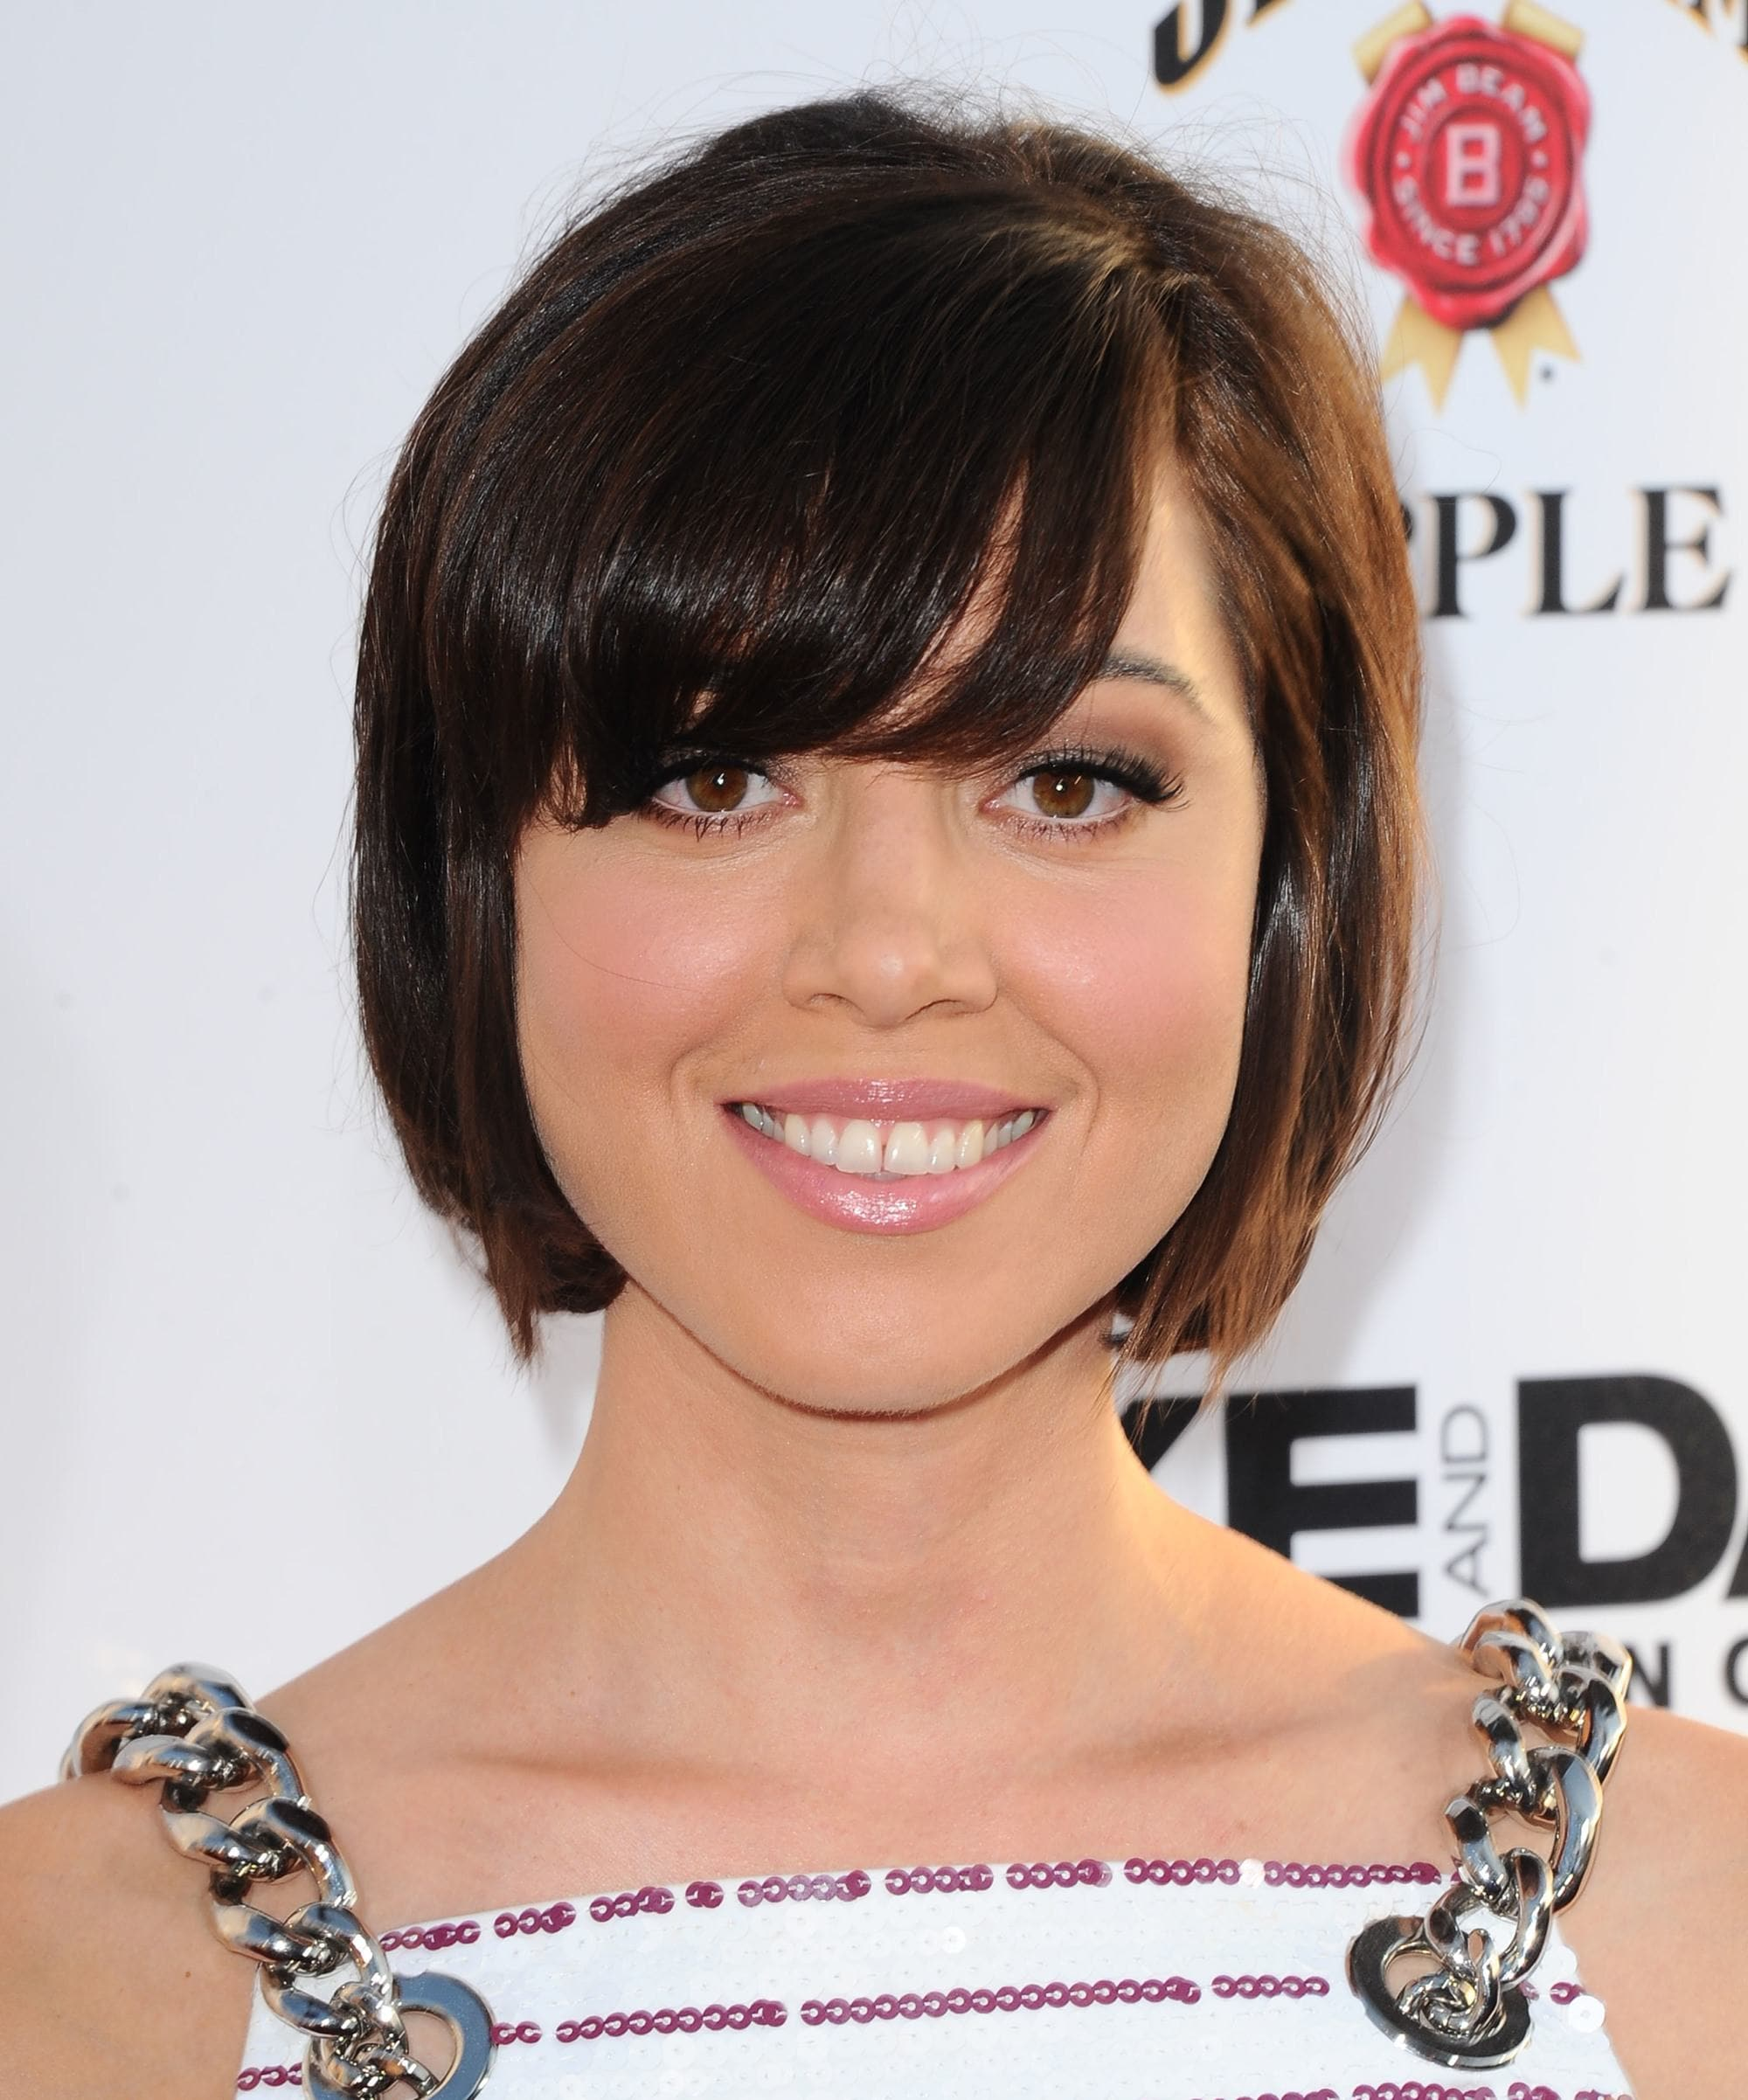 Aubrey Plaza Just Debuted A New Ginger Hairstyle And We Love It